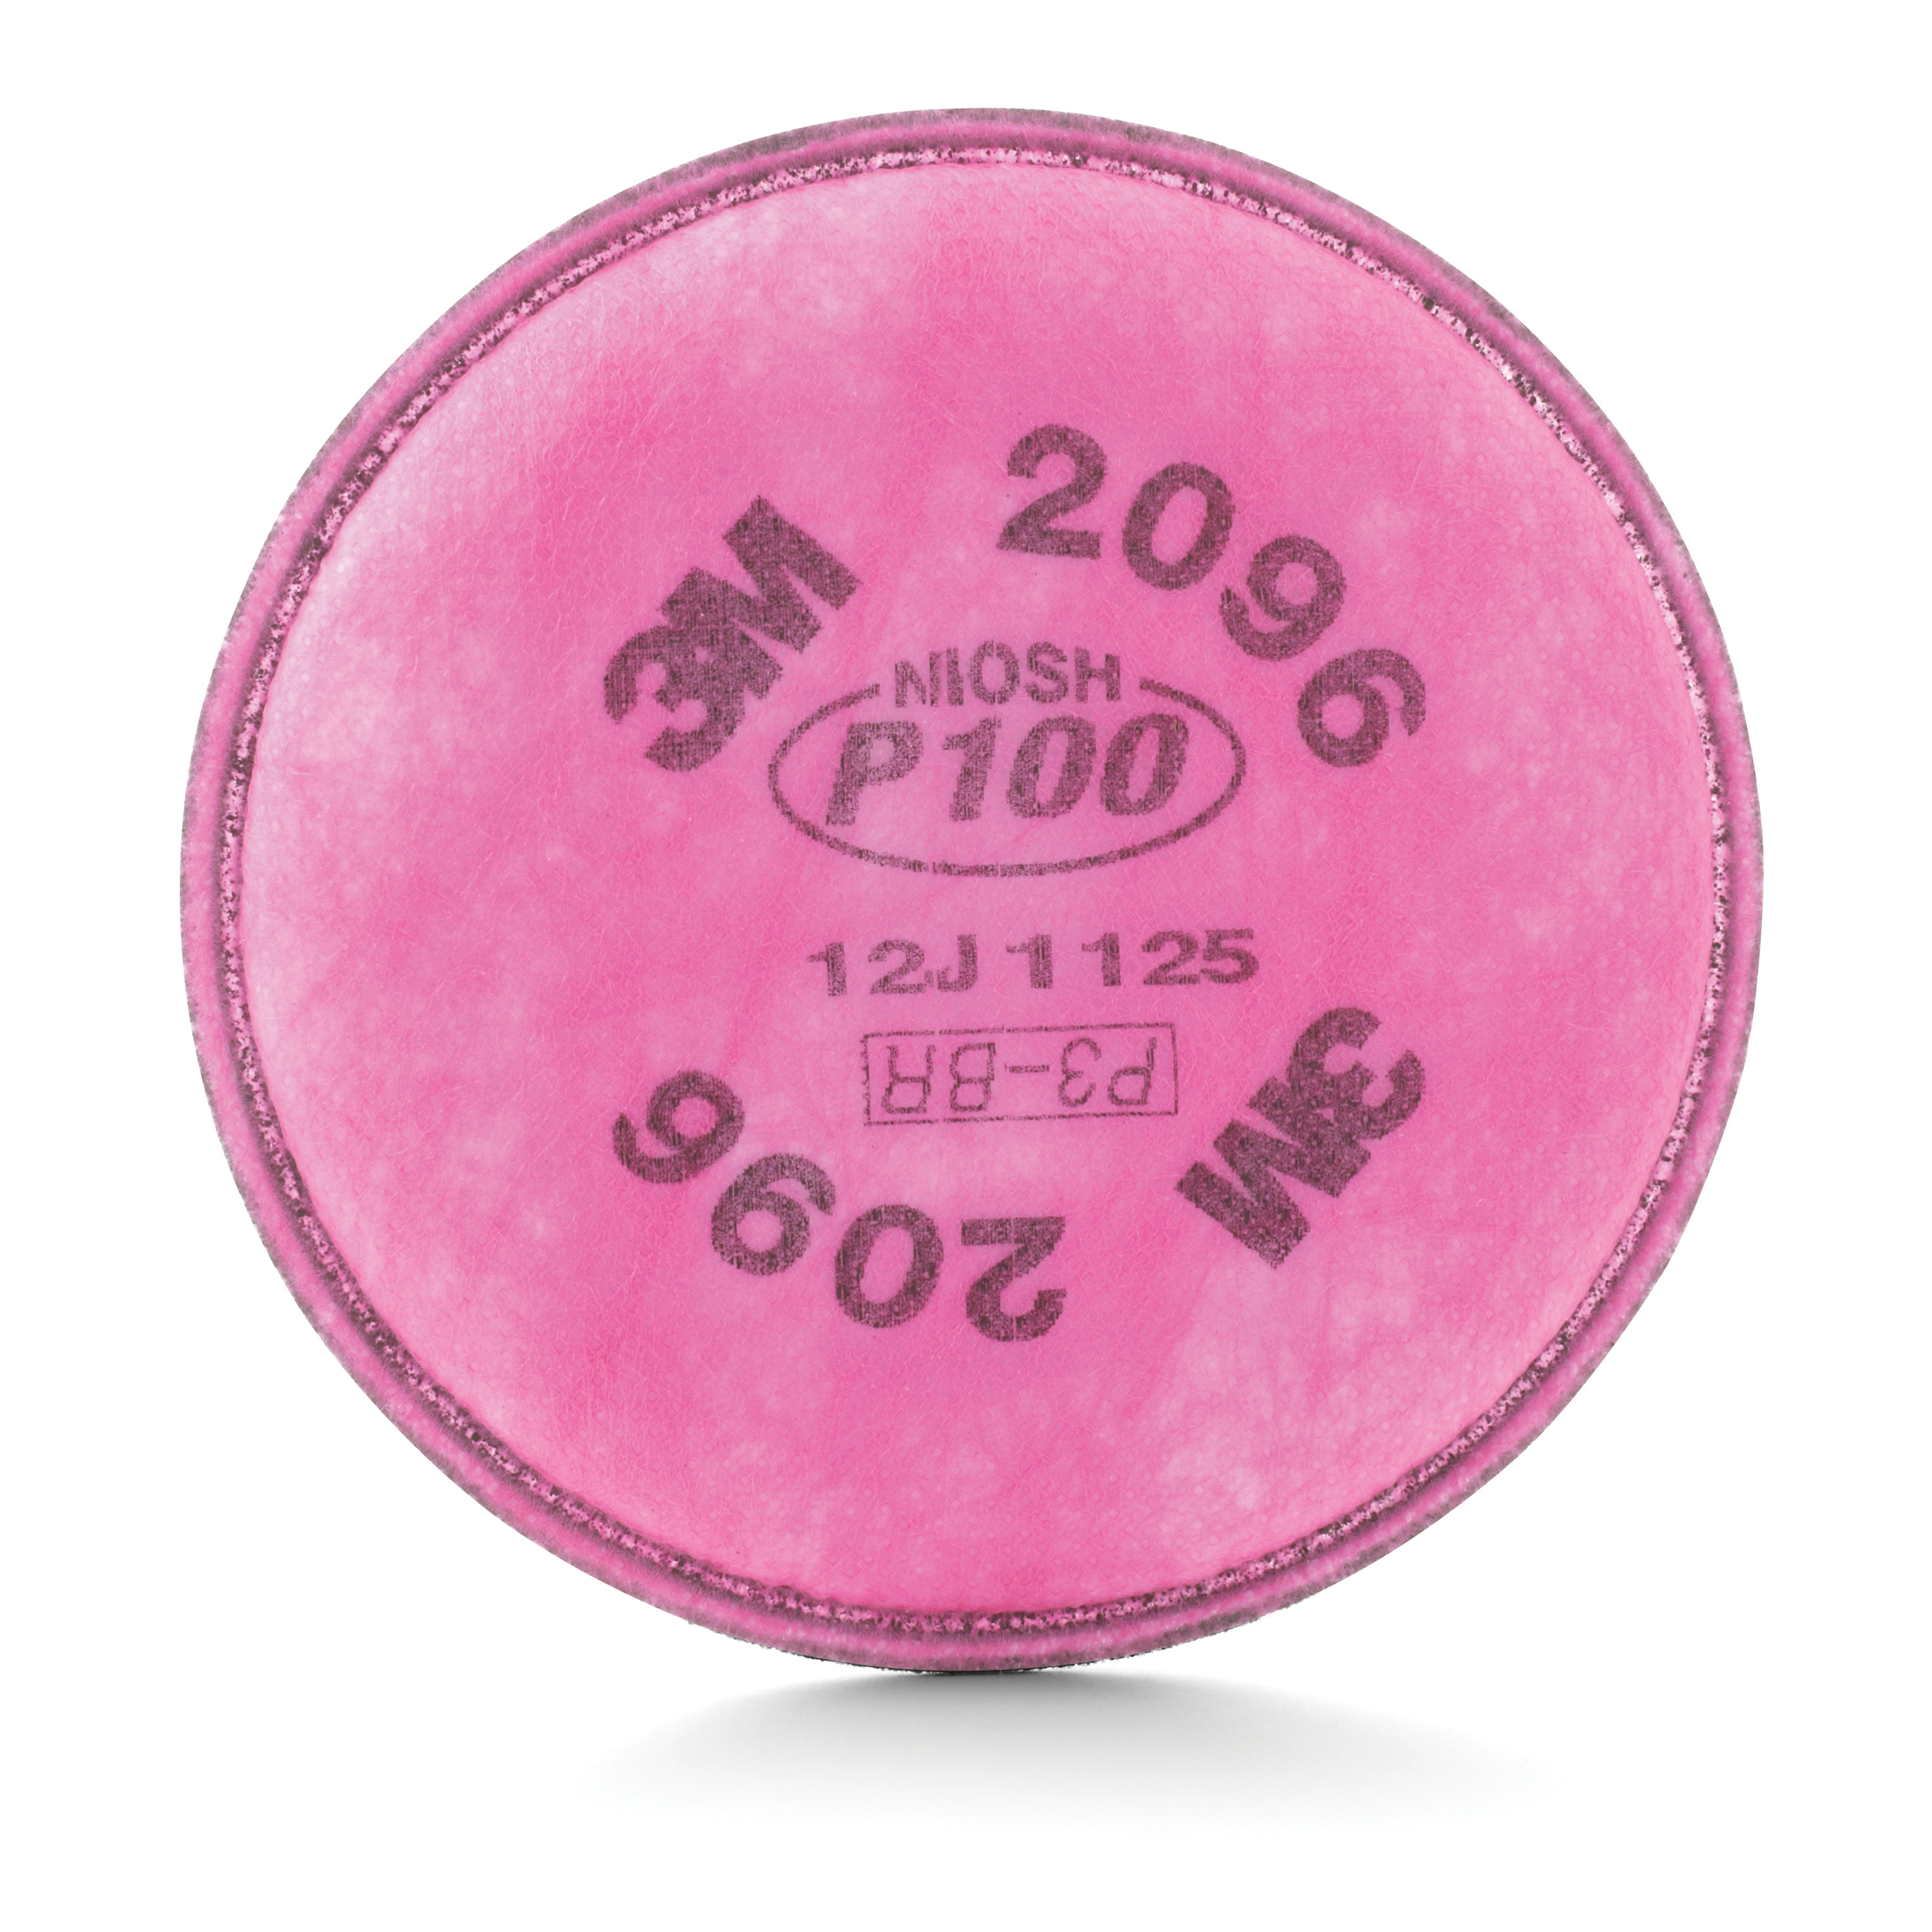 3M™ 051138-54295 Particulate Filter With Nuisance Level Acid Gas Relief, For Use With 6000 and 7000 Series Air Purifying Respirators, P100, 0.9997 Filter Efficiency, Bayonet Connection, Magenta, Resists: Oil and Non-Oil Based Particles